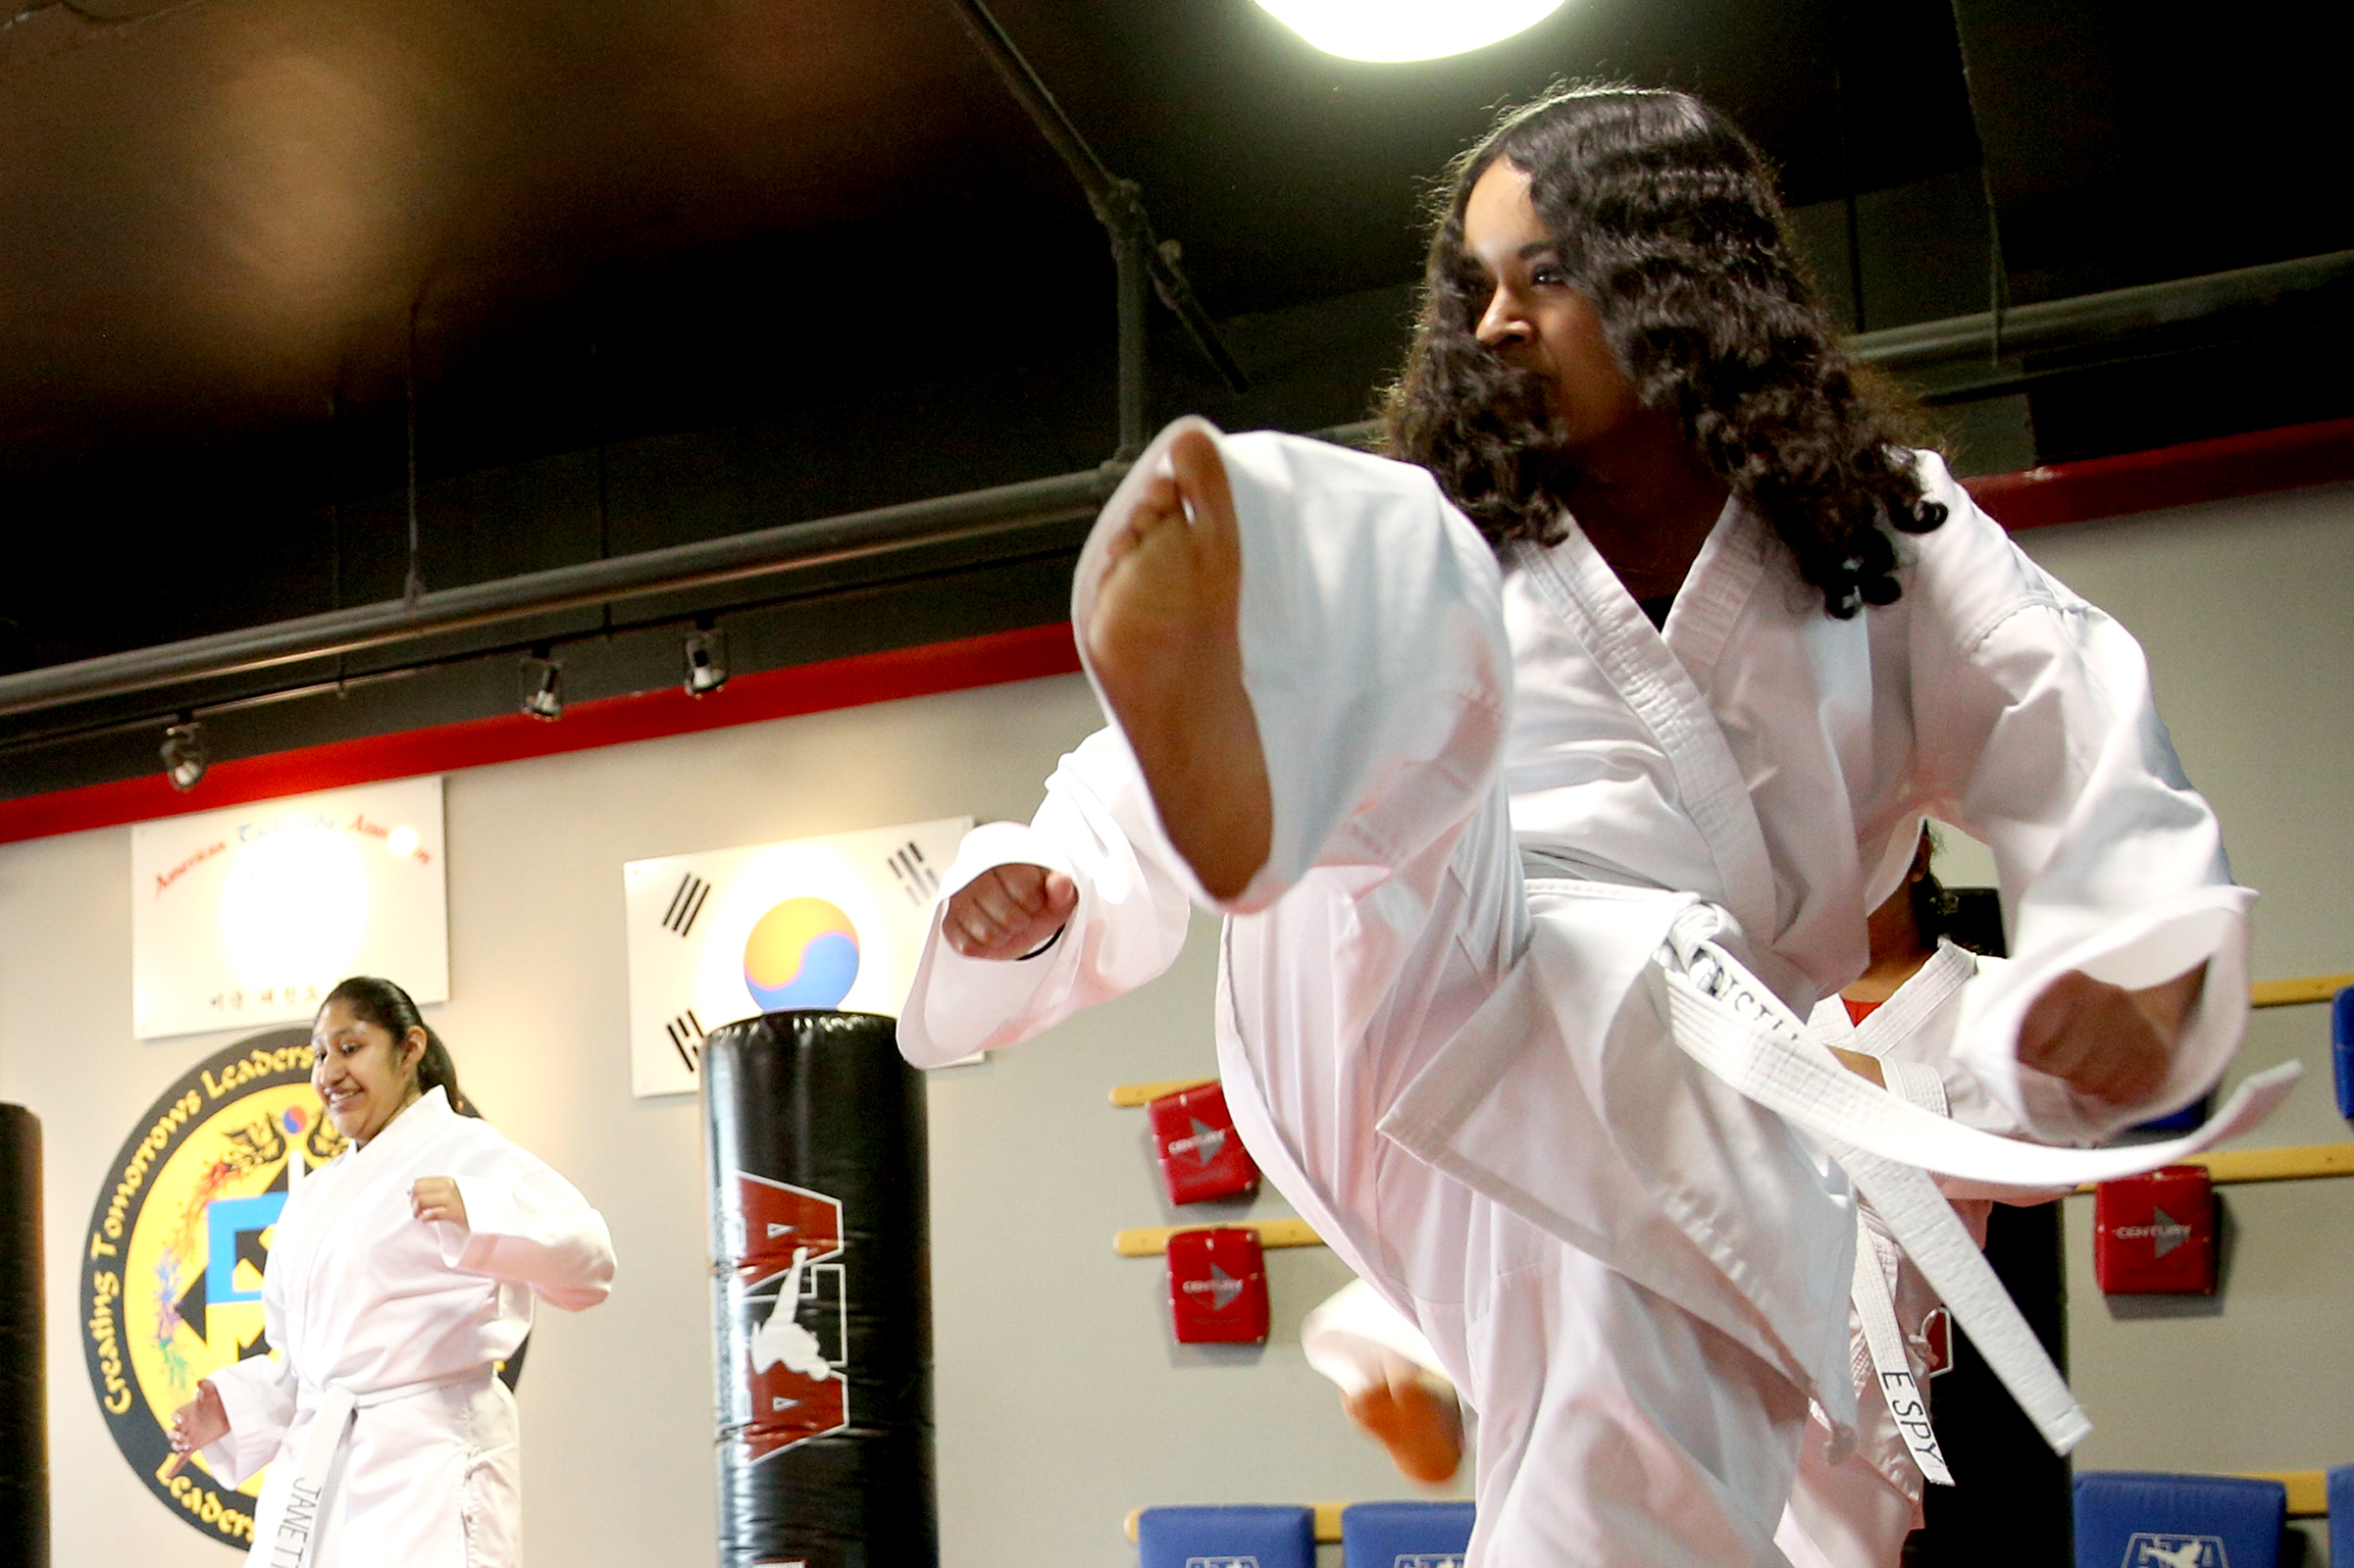 Prisilla Hernandez-Brado practices kicking as part of a Woodburn School District transition program at ATA Martial Arts Keizer on Thursday, Dec.13, 2018.